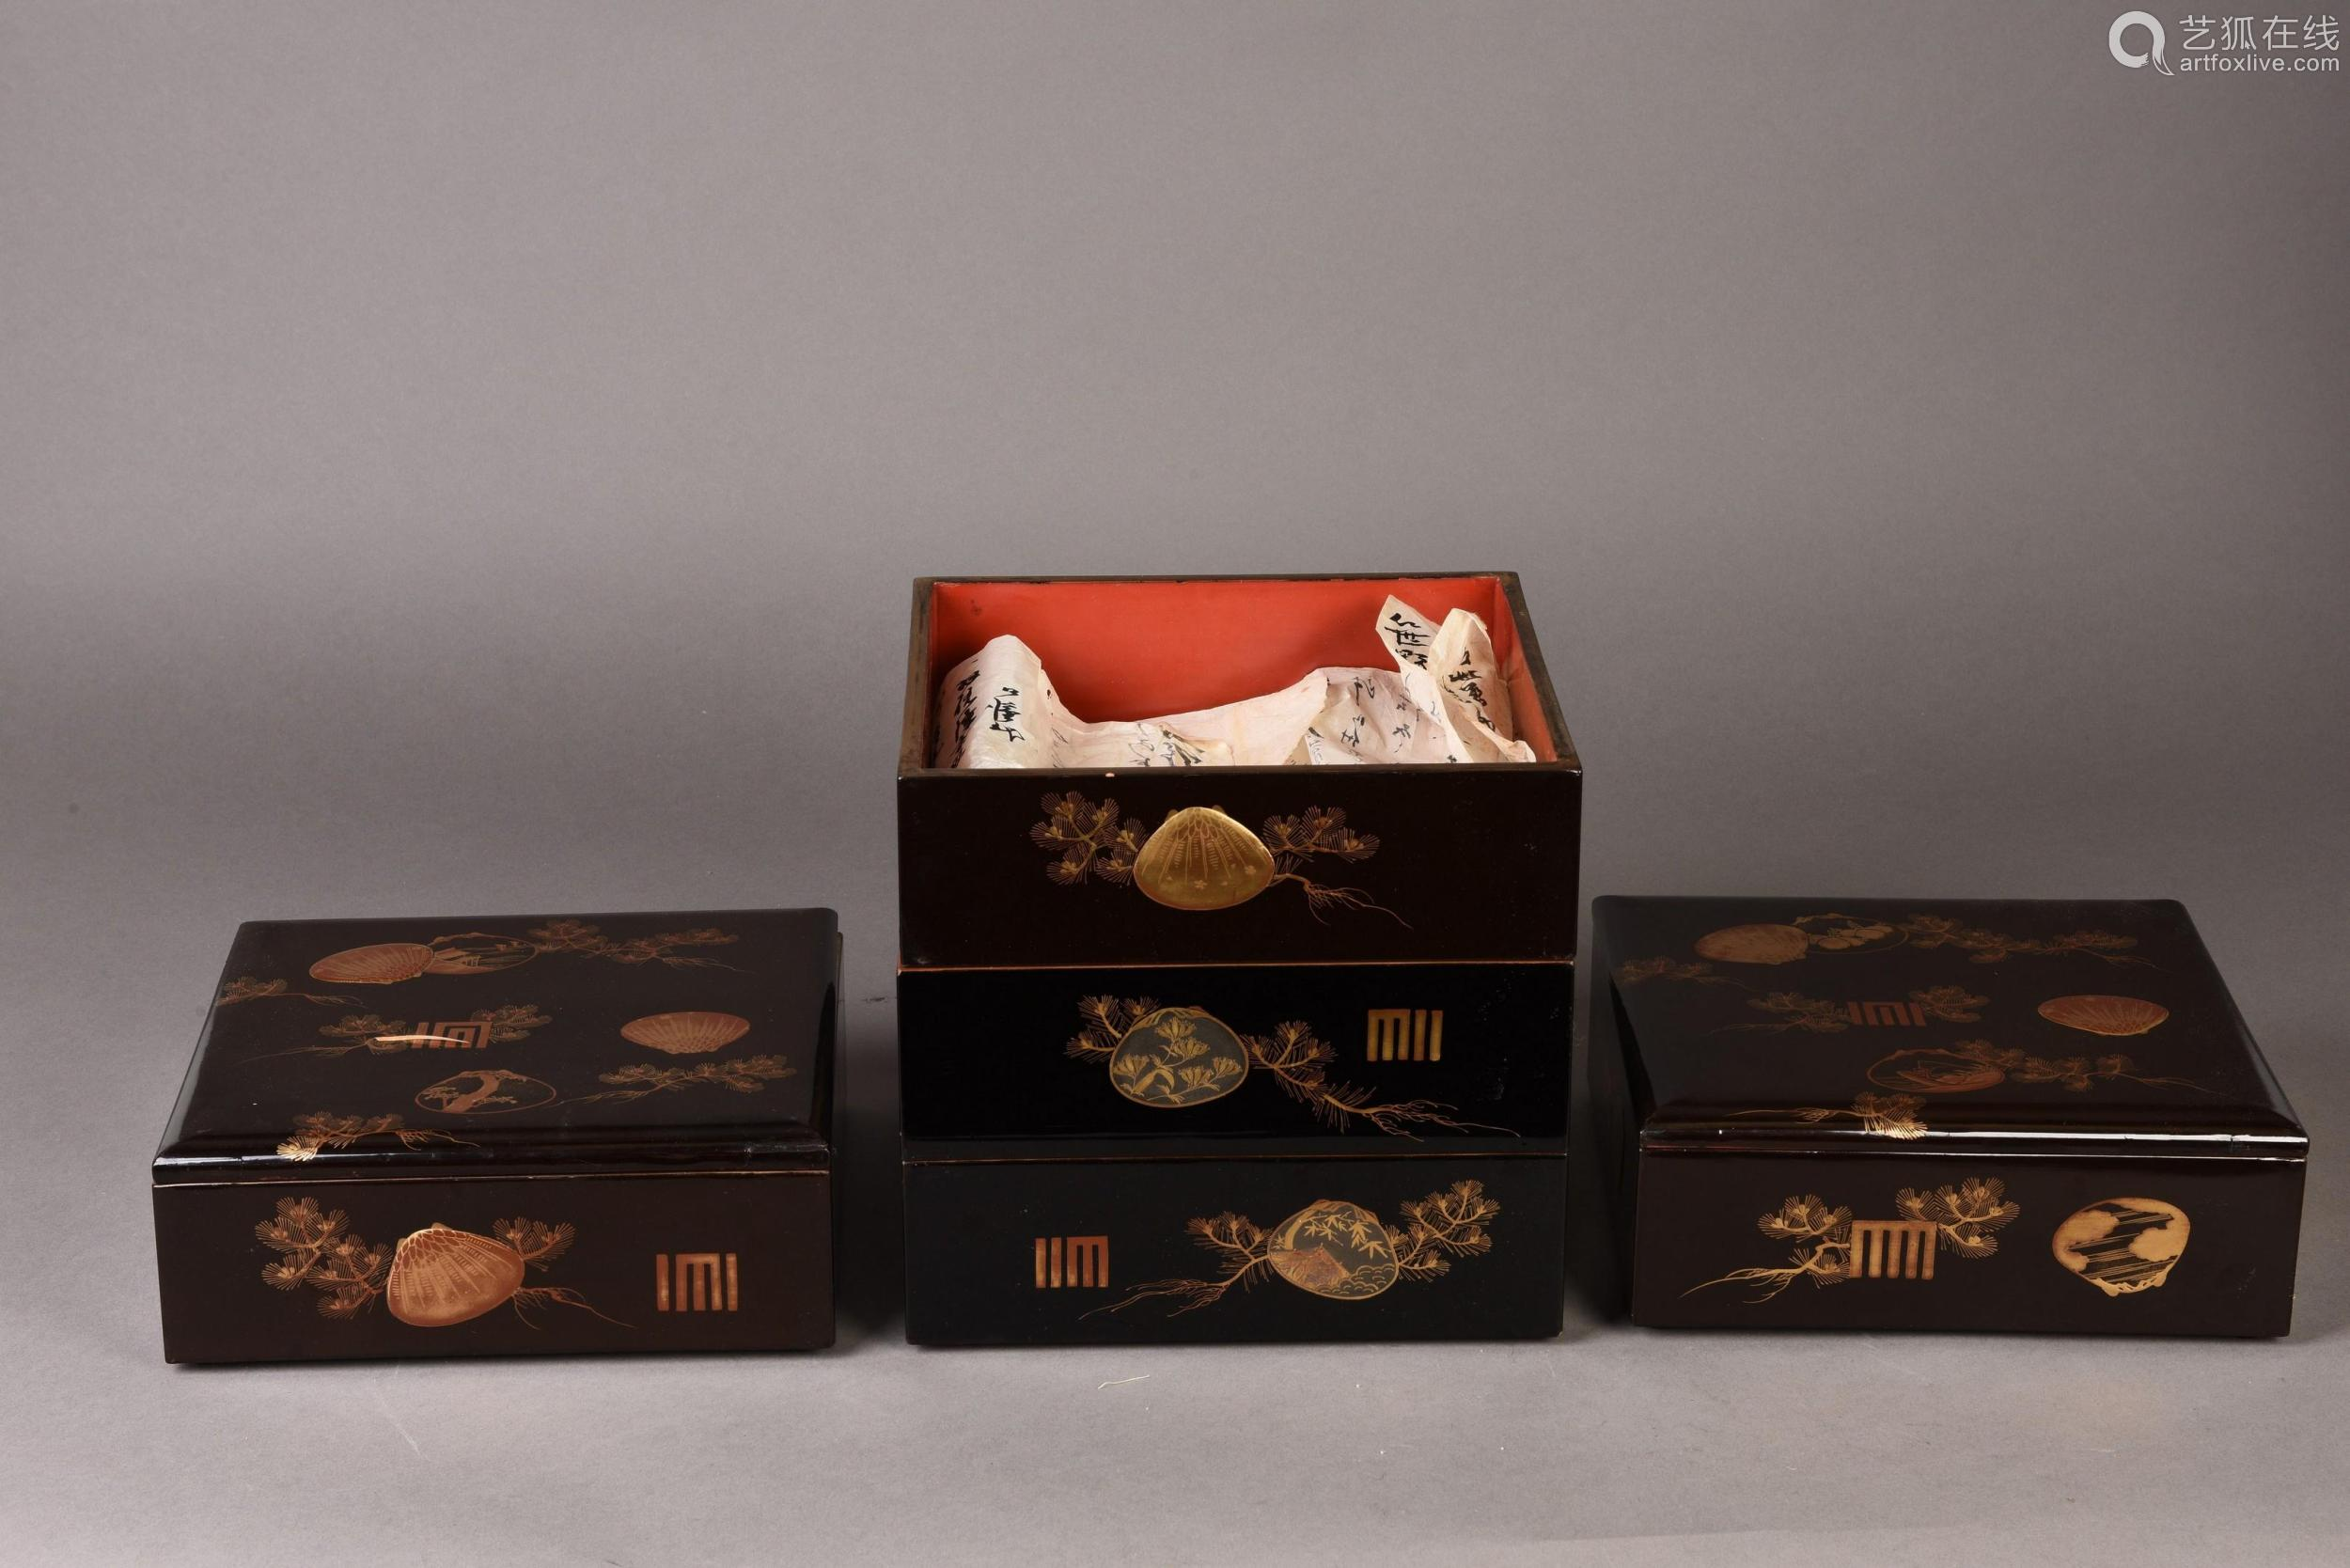 A SET OF FIVE LACQUER BOXES